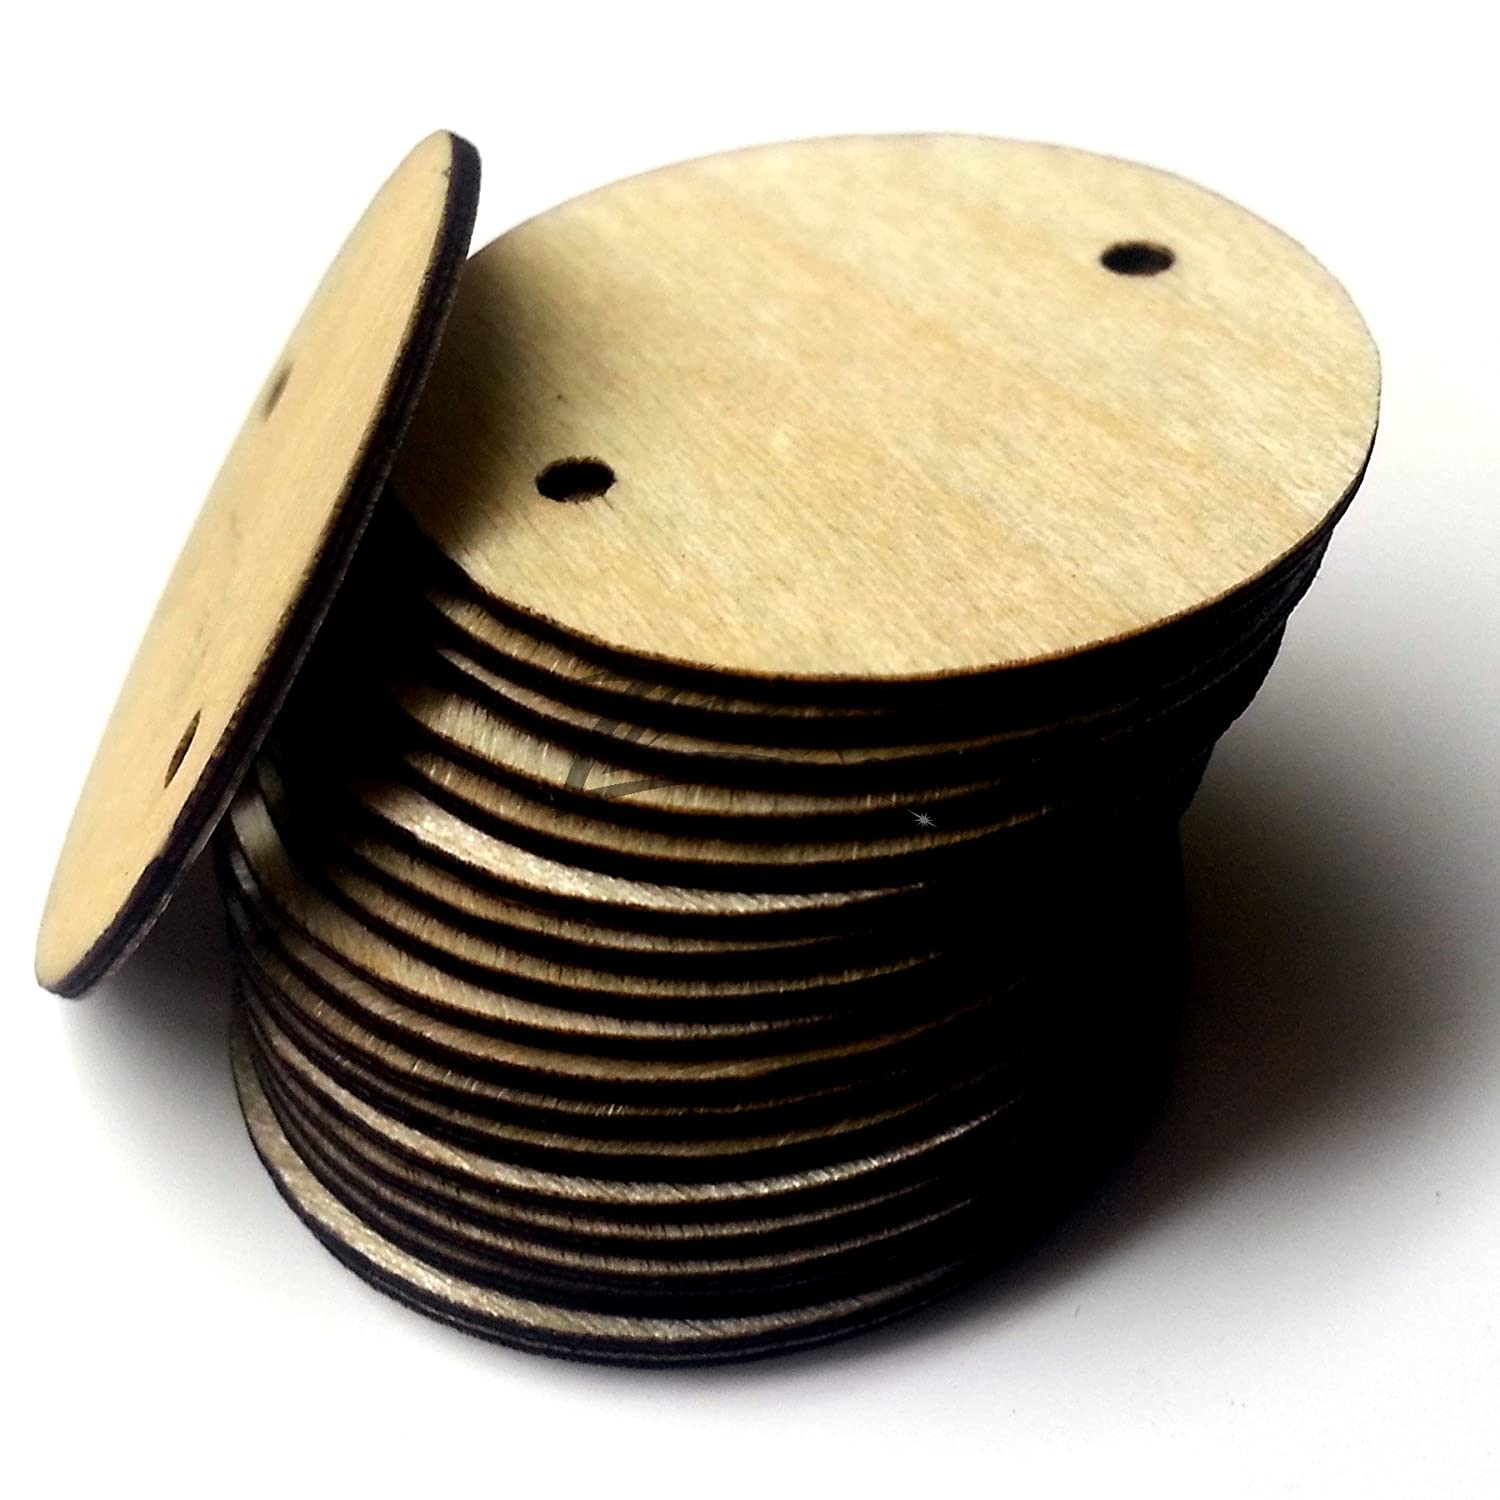 Zlazr 50 1 X 132 Small Super Thin Wooden Circles Family Birthday Craft Disc Two 2mm Hole Tags Unfinished Birch Wood Made In The Usa